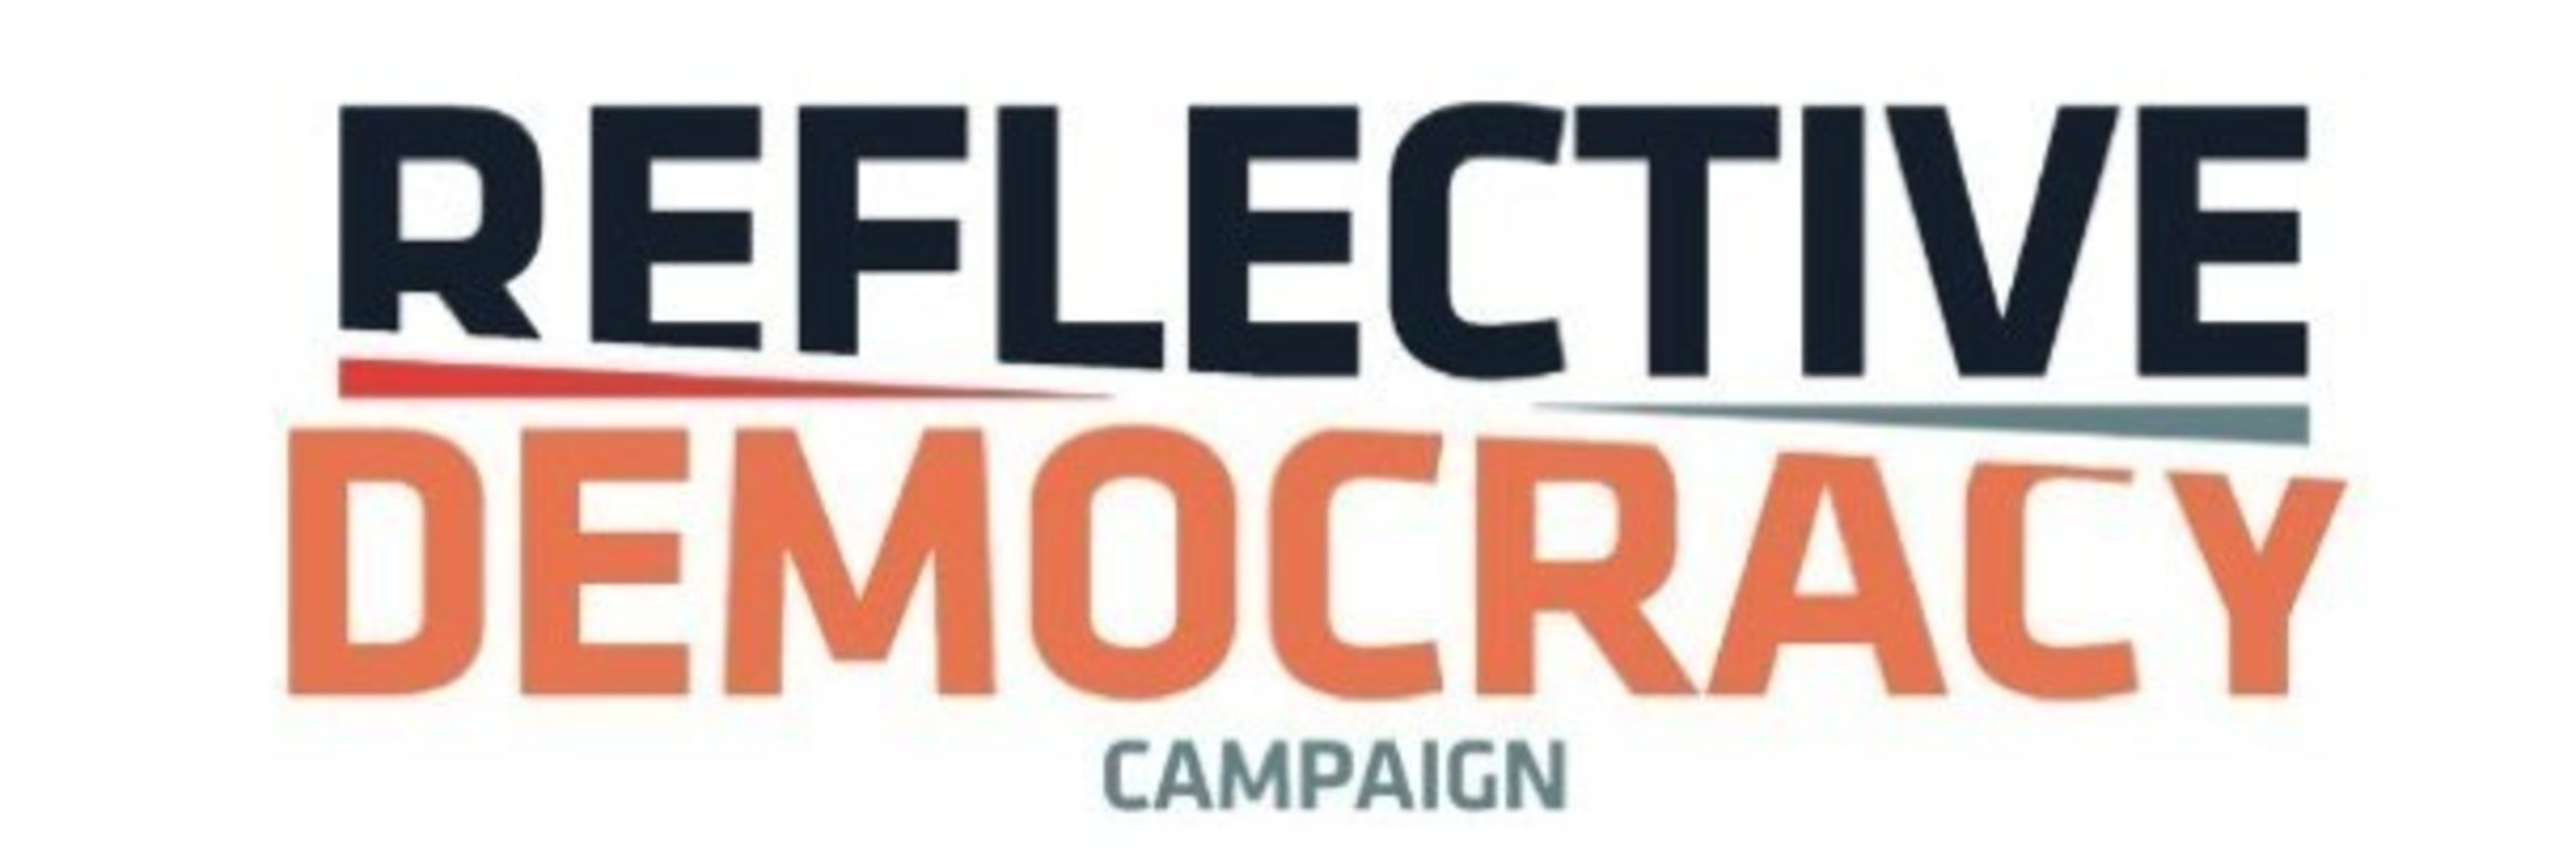 The Reflective Democracy Campaign reimagines a political system that engages America's full range of talent and experience. The campaign conducts groundbreaking research, engages the public in crucial dialogue, and makes catalytic investments in leaders and organizations working towards a Reflective Democracy.